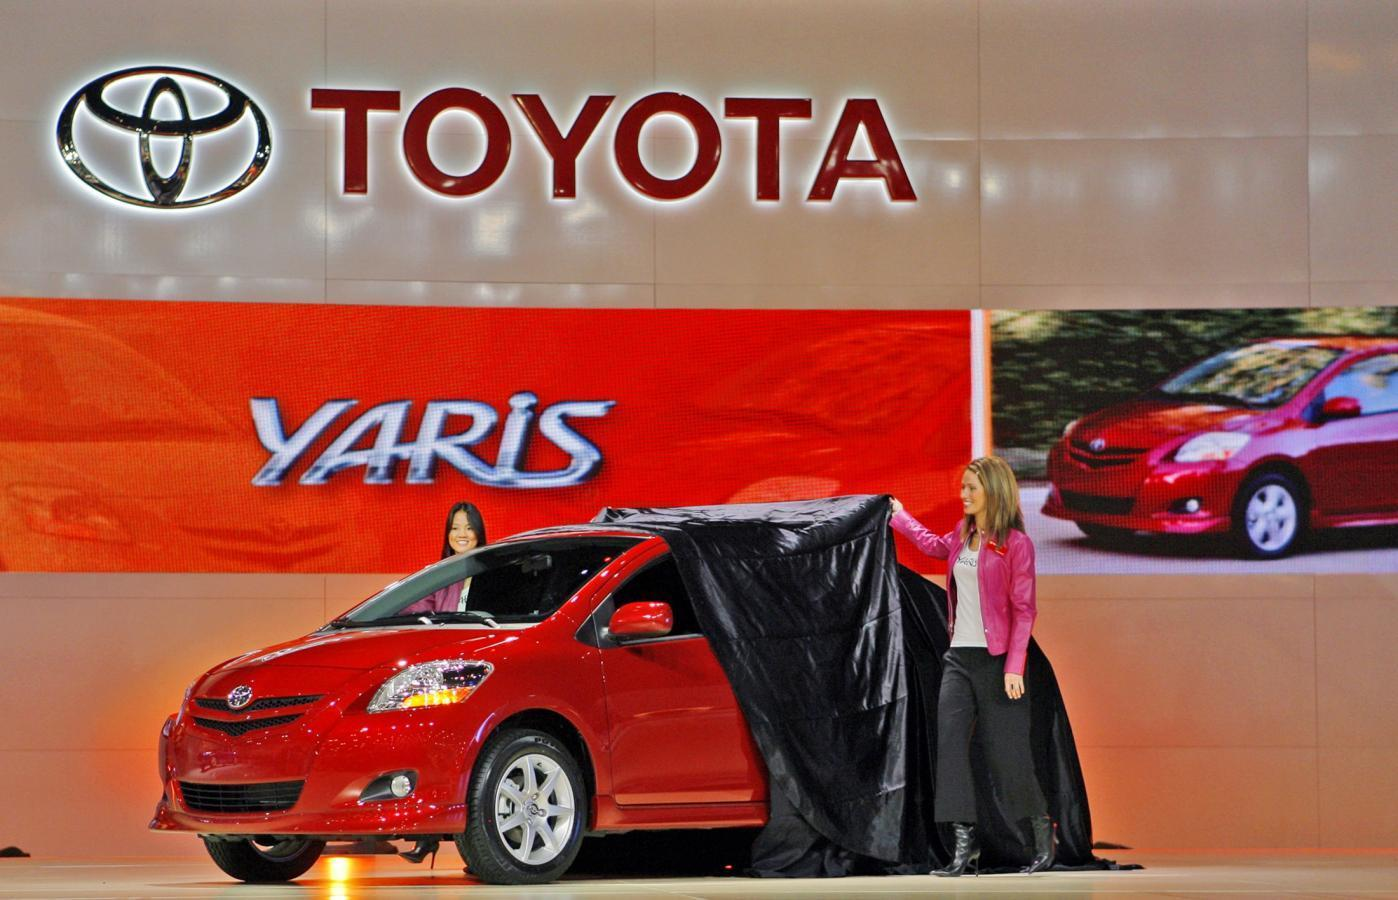 Toyota to recall nearly 6 5 million vehicles for steering, other